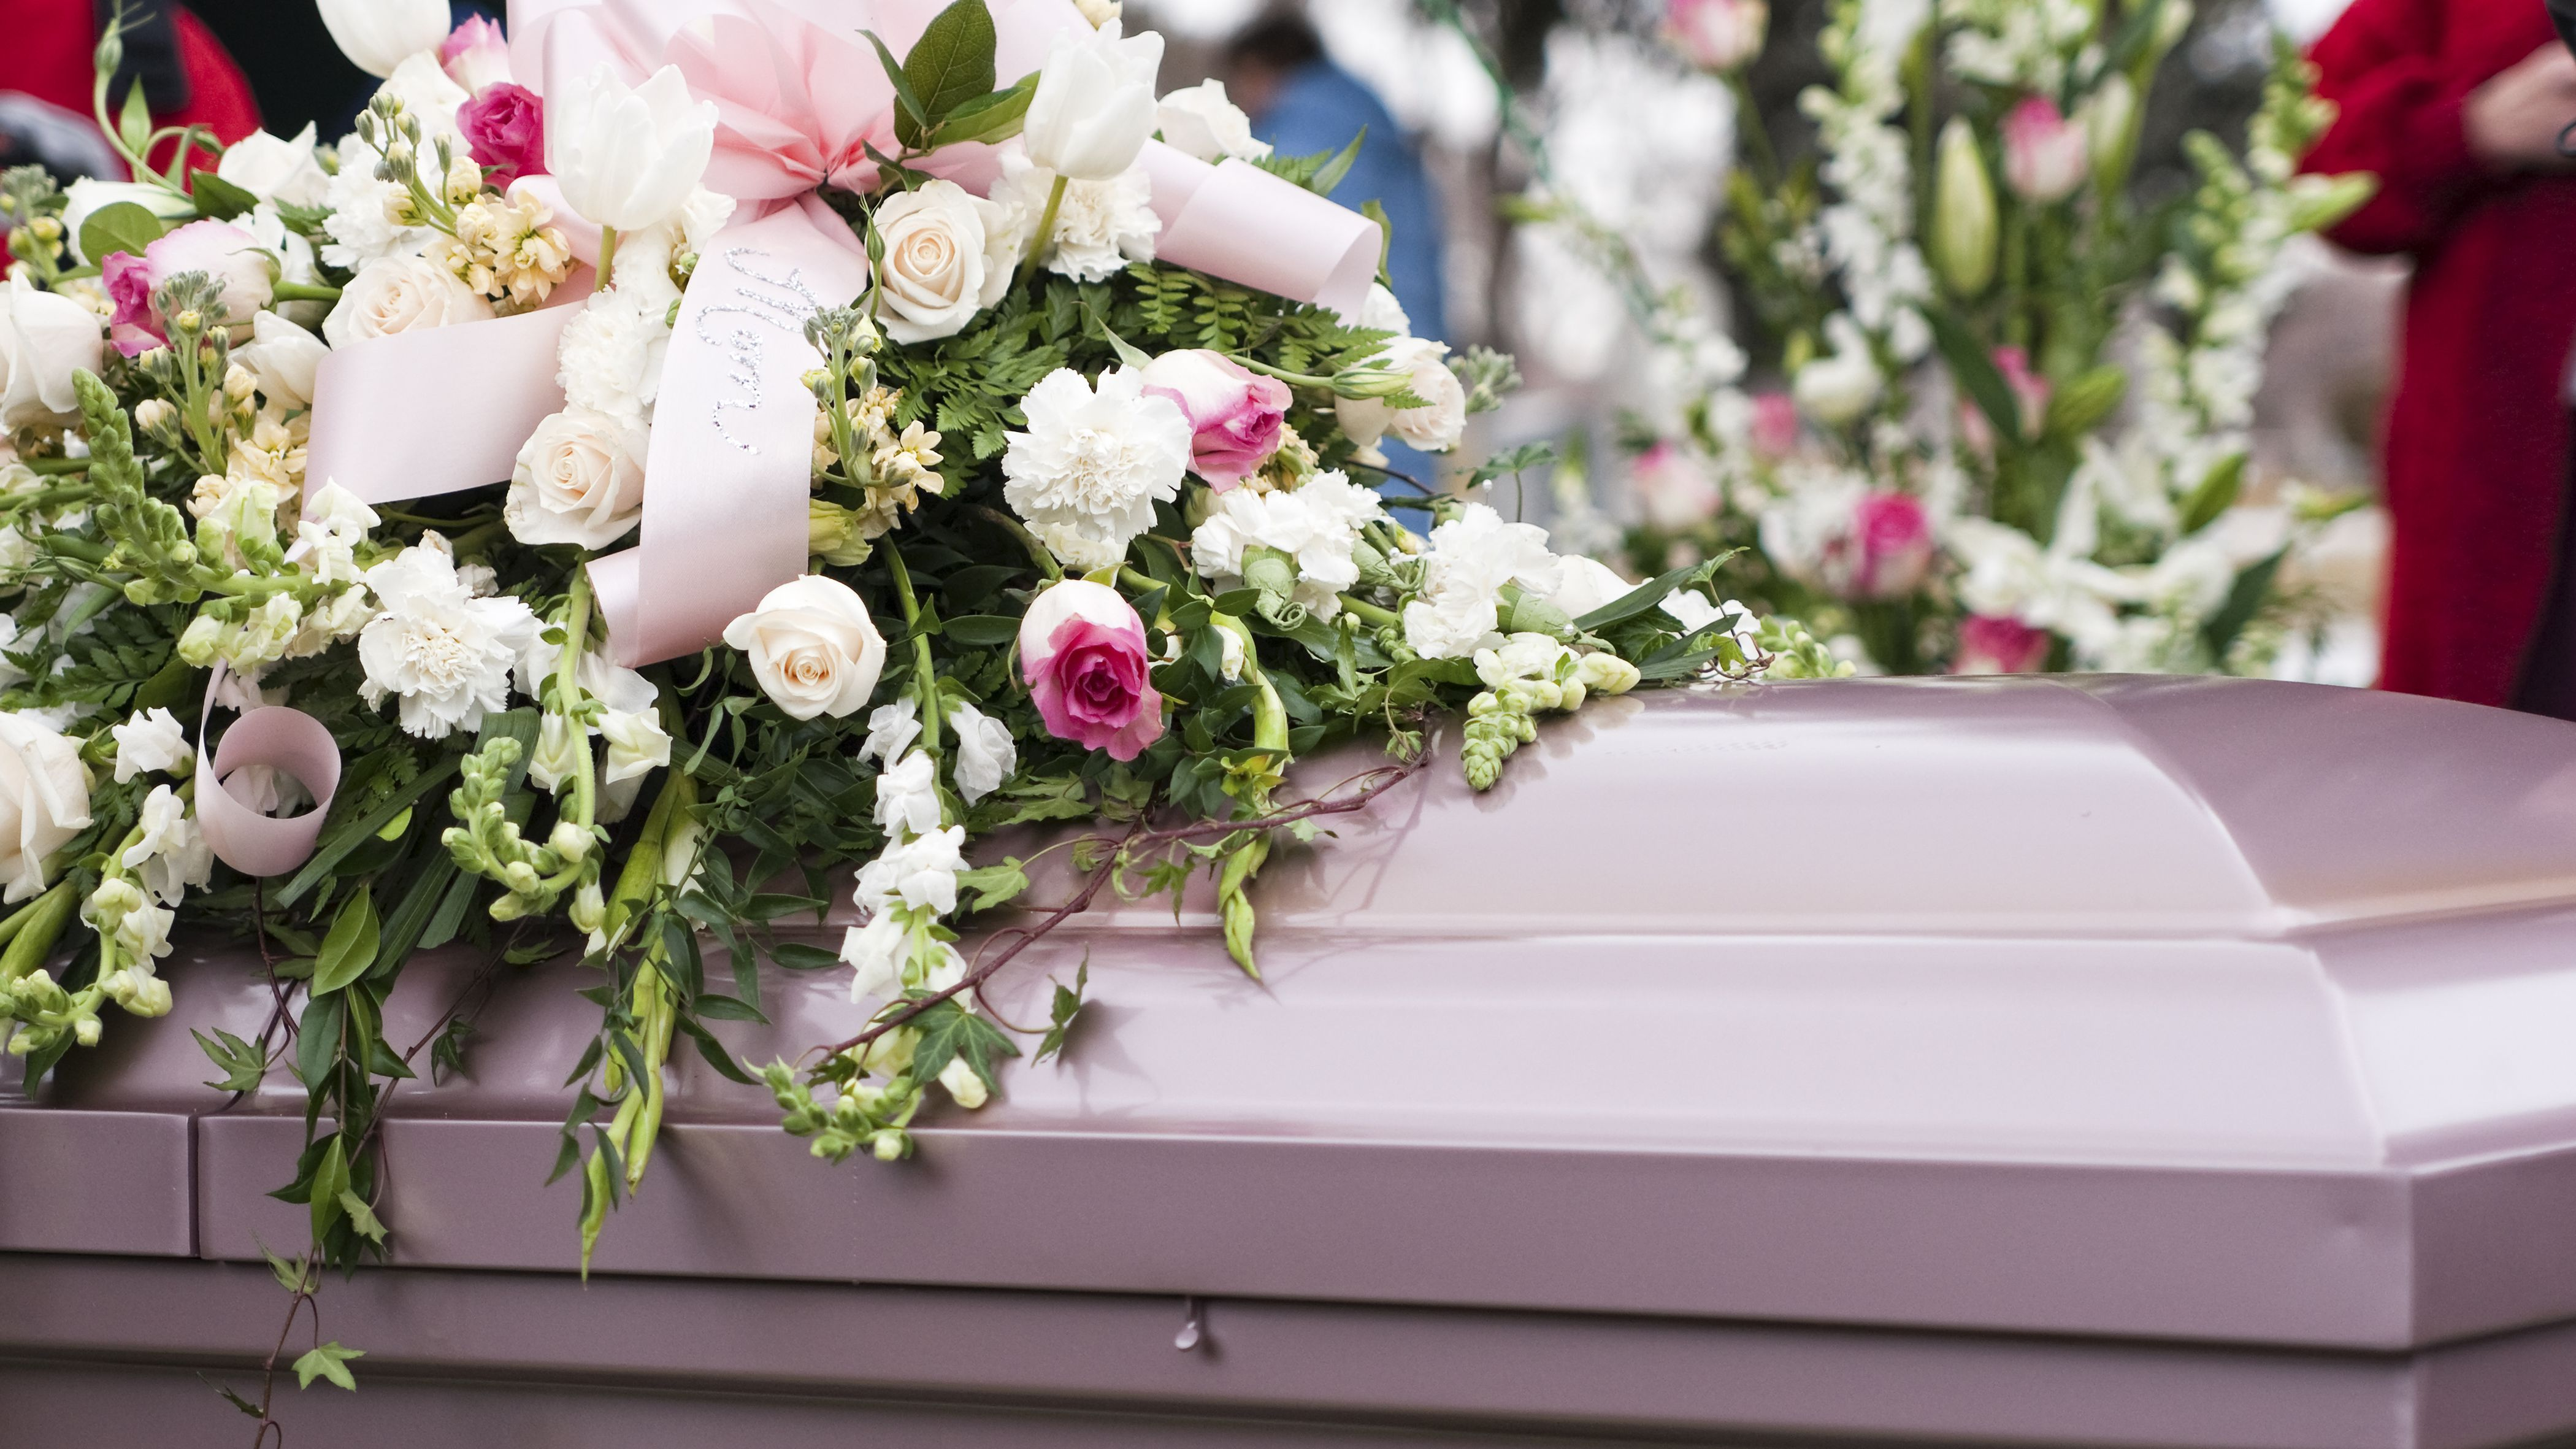 From Event Planning To Funeral